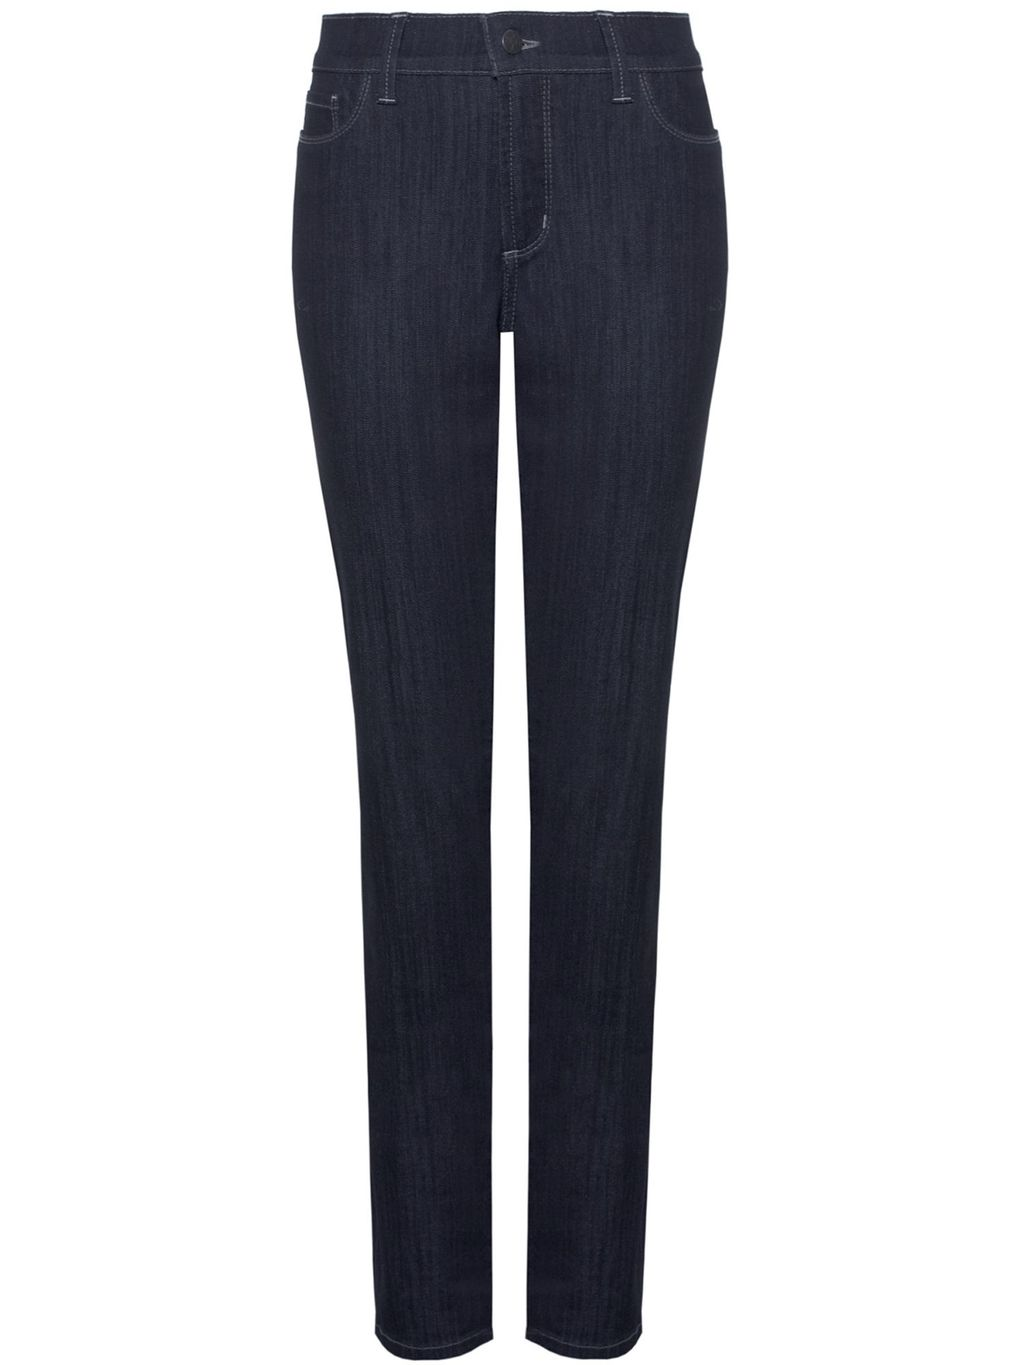 Samantha Slim, Blue - length: standard; pattern: plain; waist: high rise; style: slim leg; predominant colour: navy; occasions: casual; fibres: cotton - stretch; jeans detail: dark wash; texture group: denim; pattern type: fabric; season: s/s 2016; wardrobe: basic